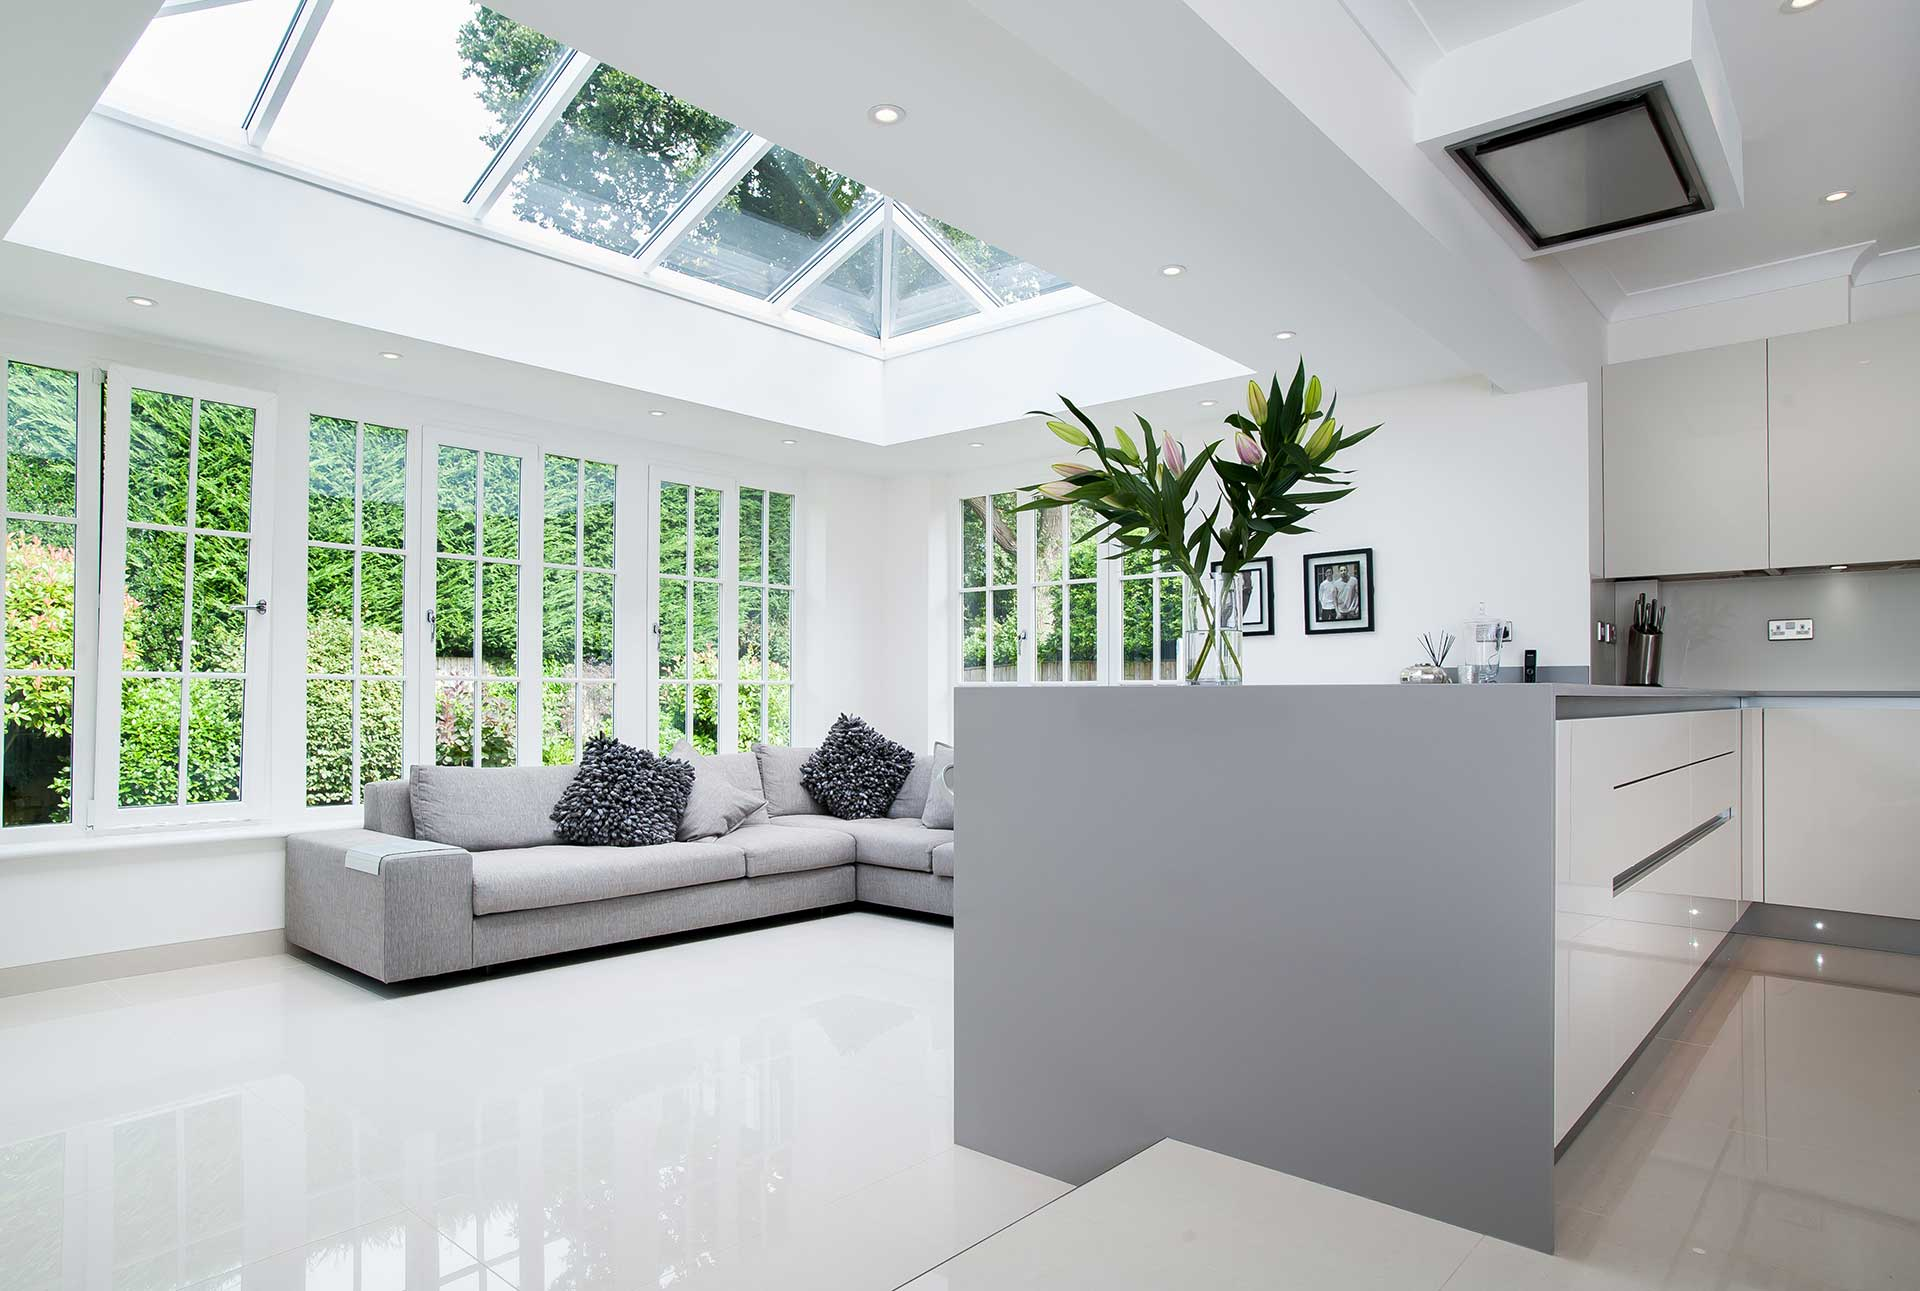 Lantern Roof Prices Bristol